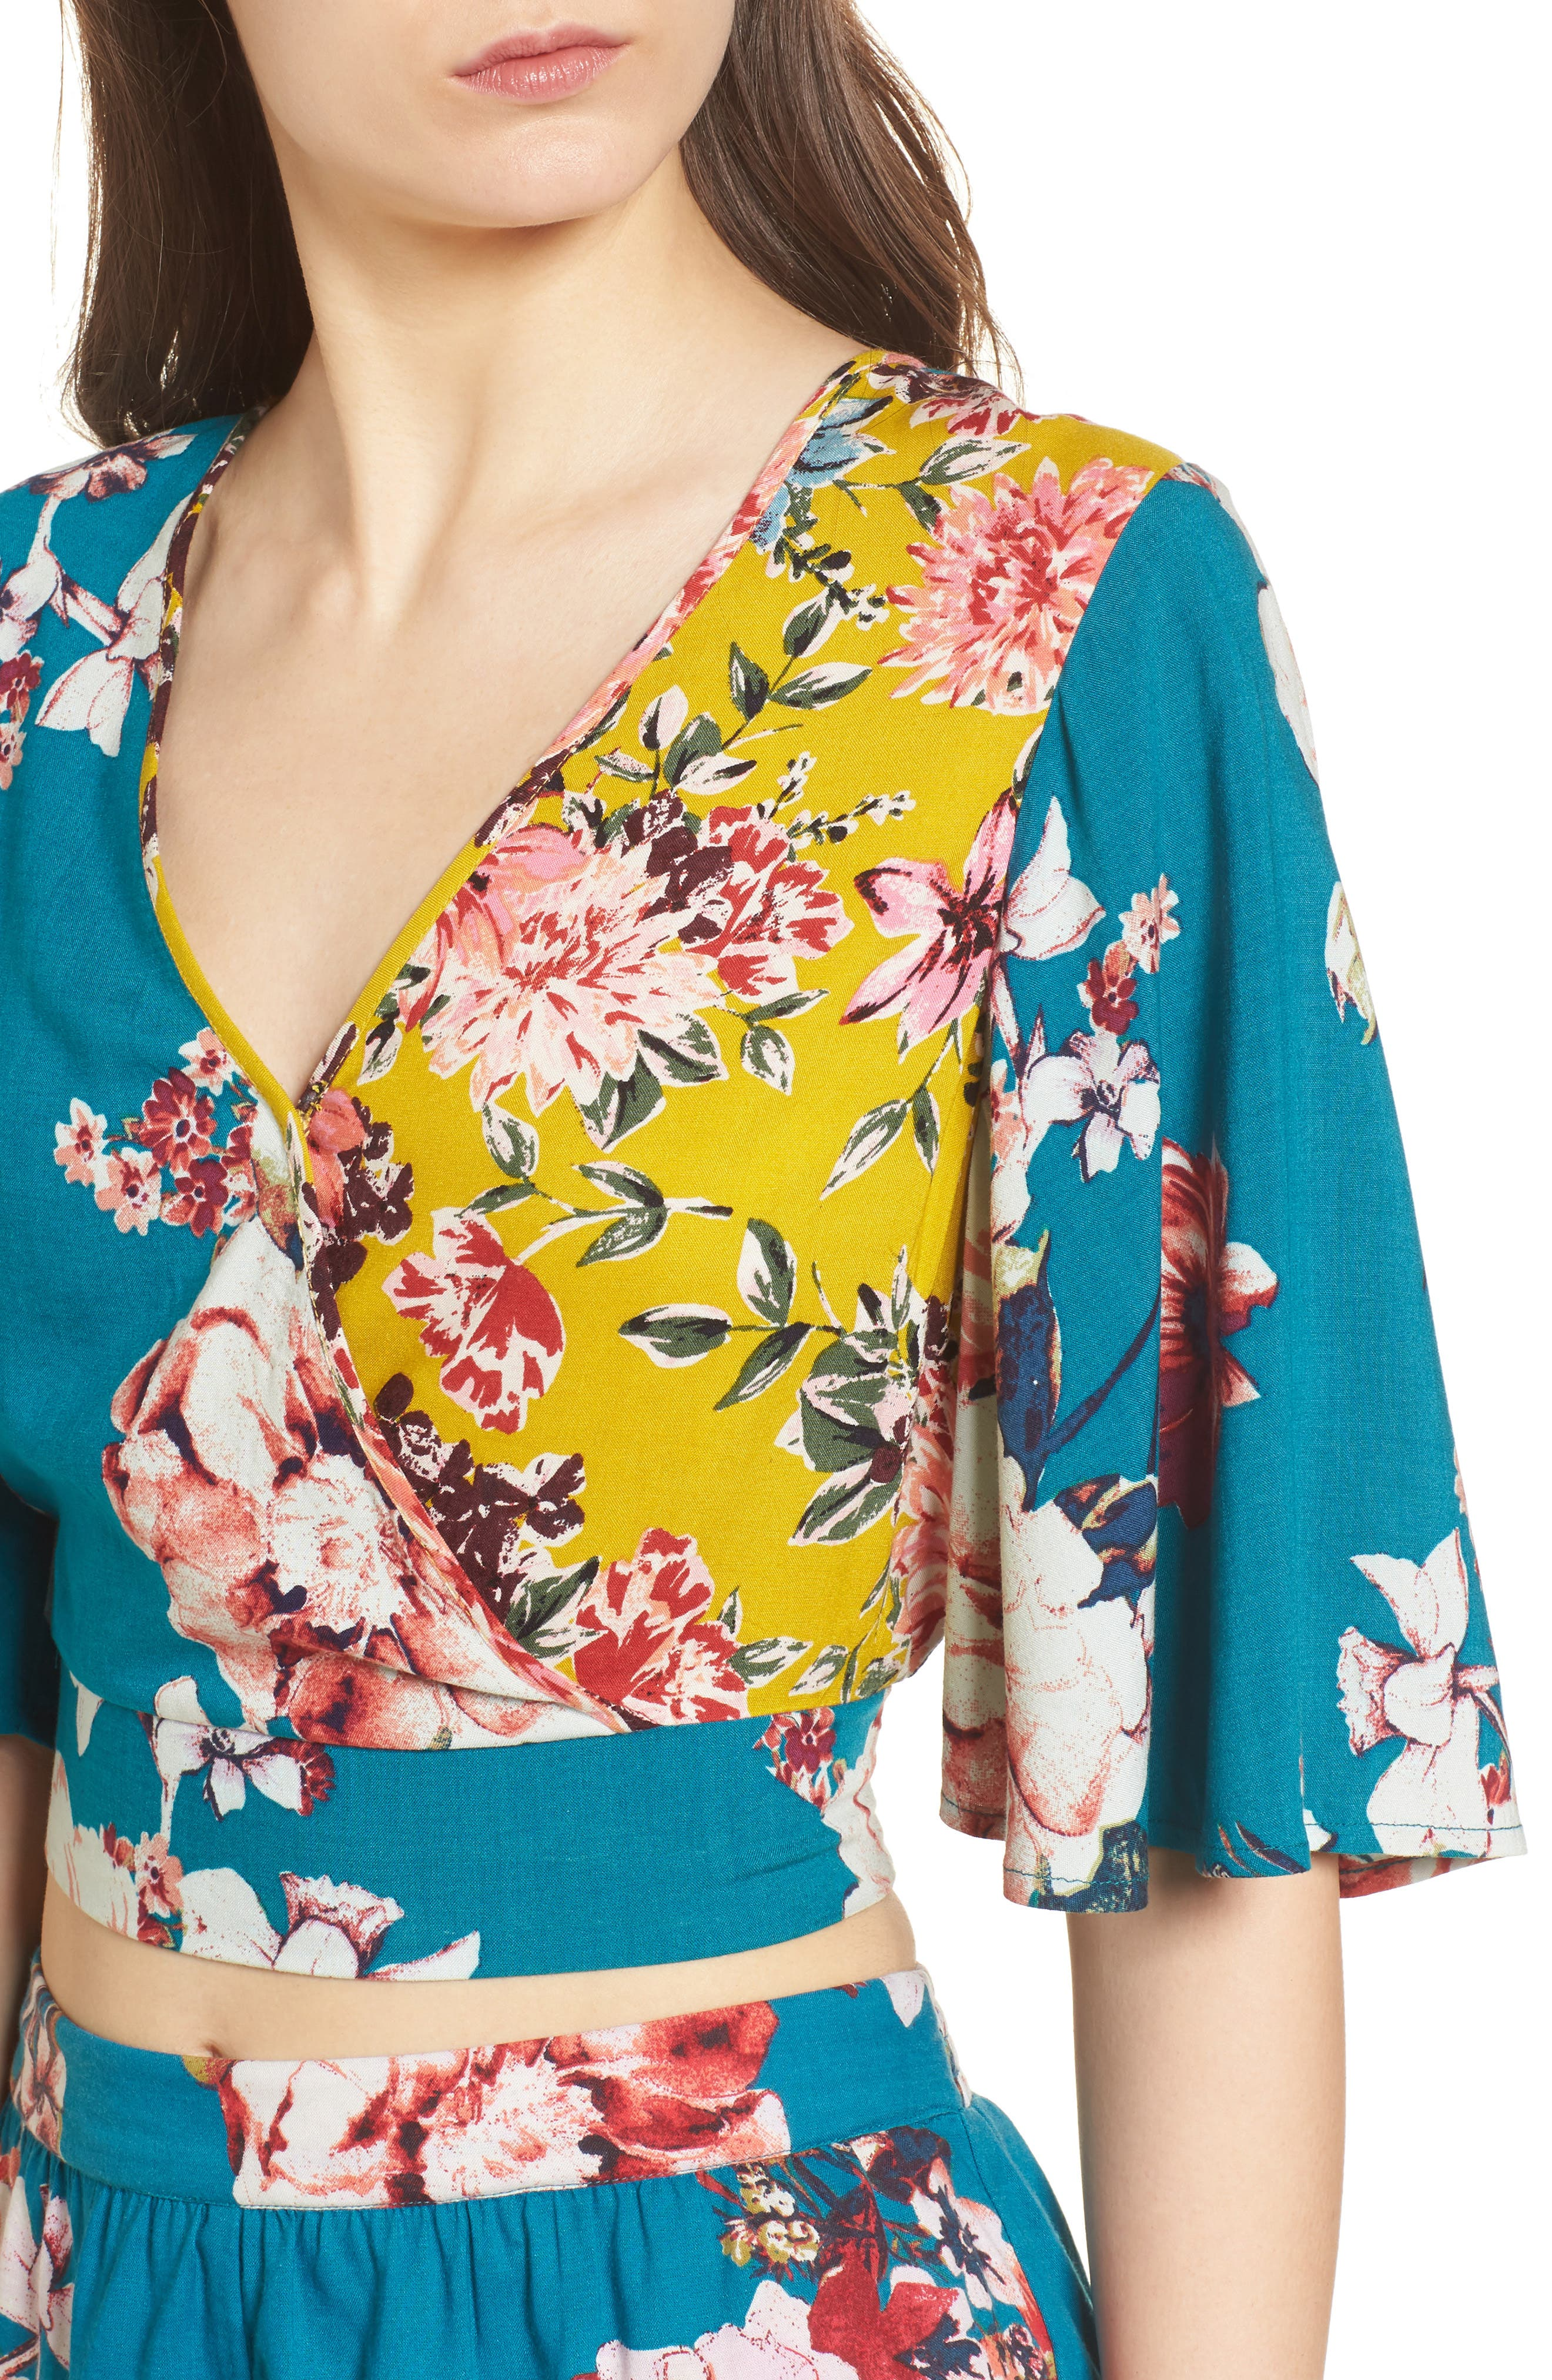 Mix Floral Crop Top,                             Alternate thumbnail 6, color,                             Teal/ Peach